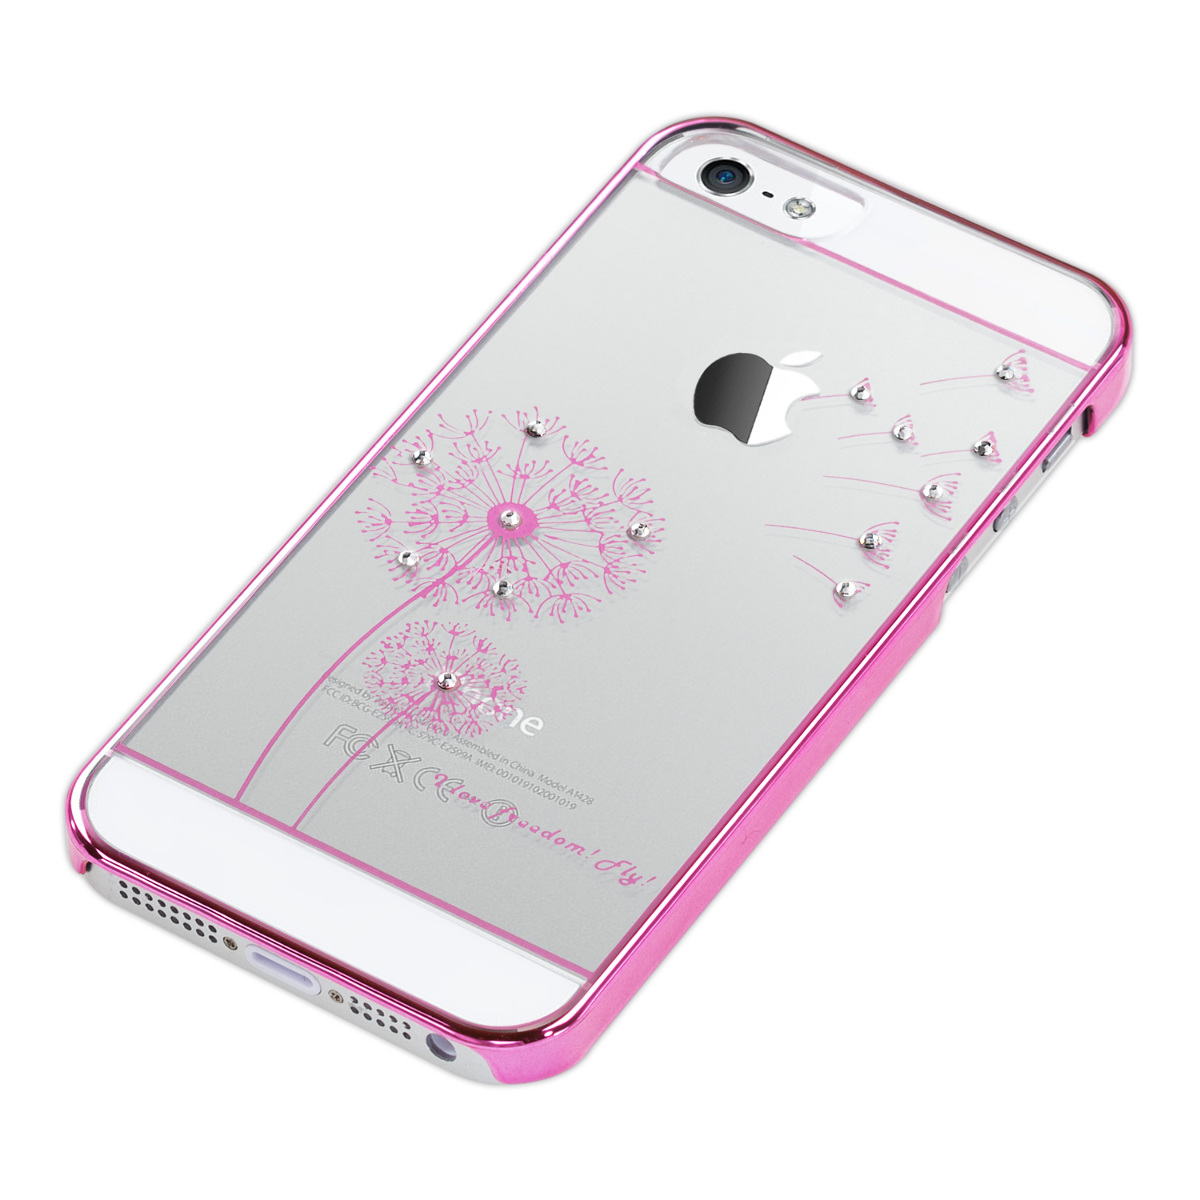 Details about kwmobile CRYSTAL CASE FOR APPLE IPHONE SE / 5 / 5S CLEAR ...